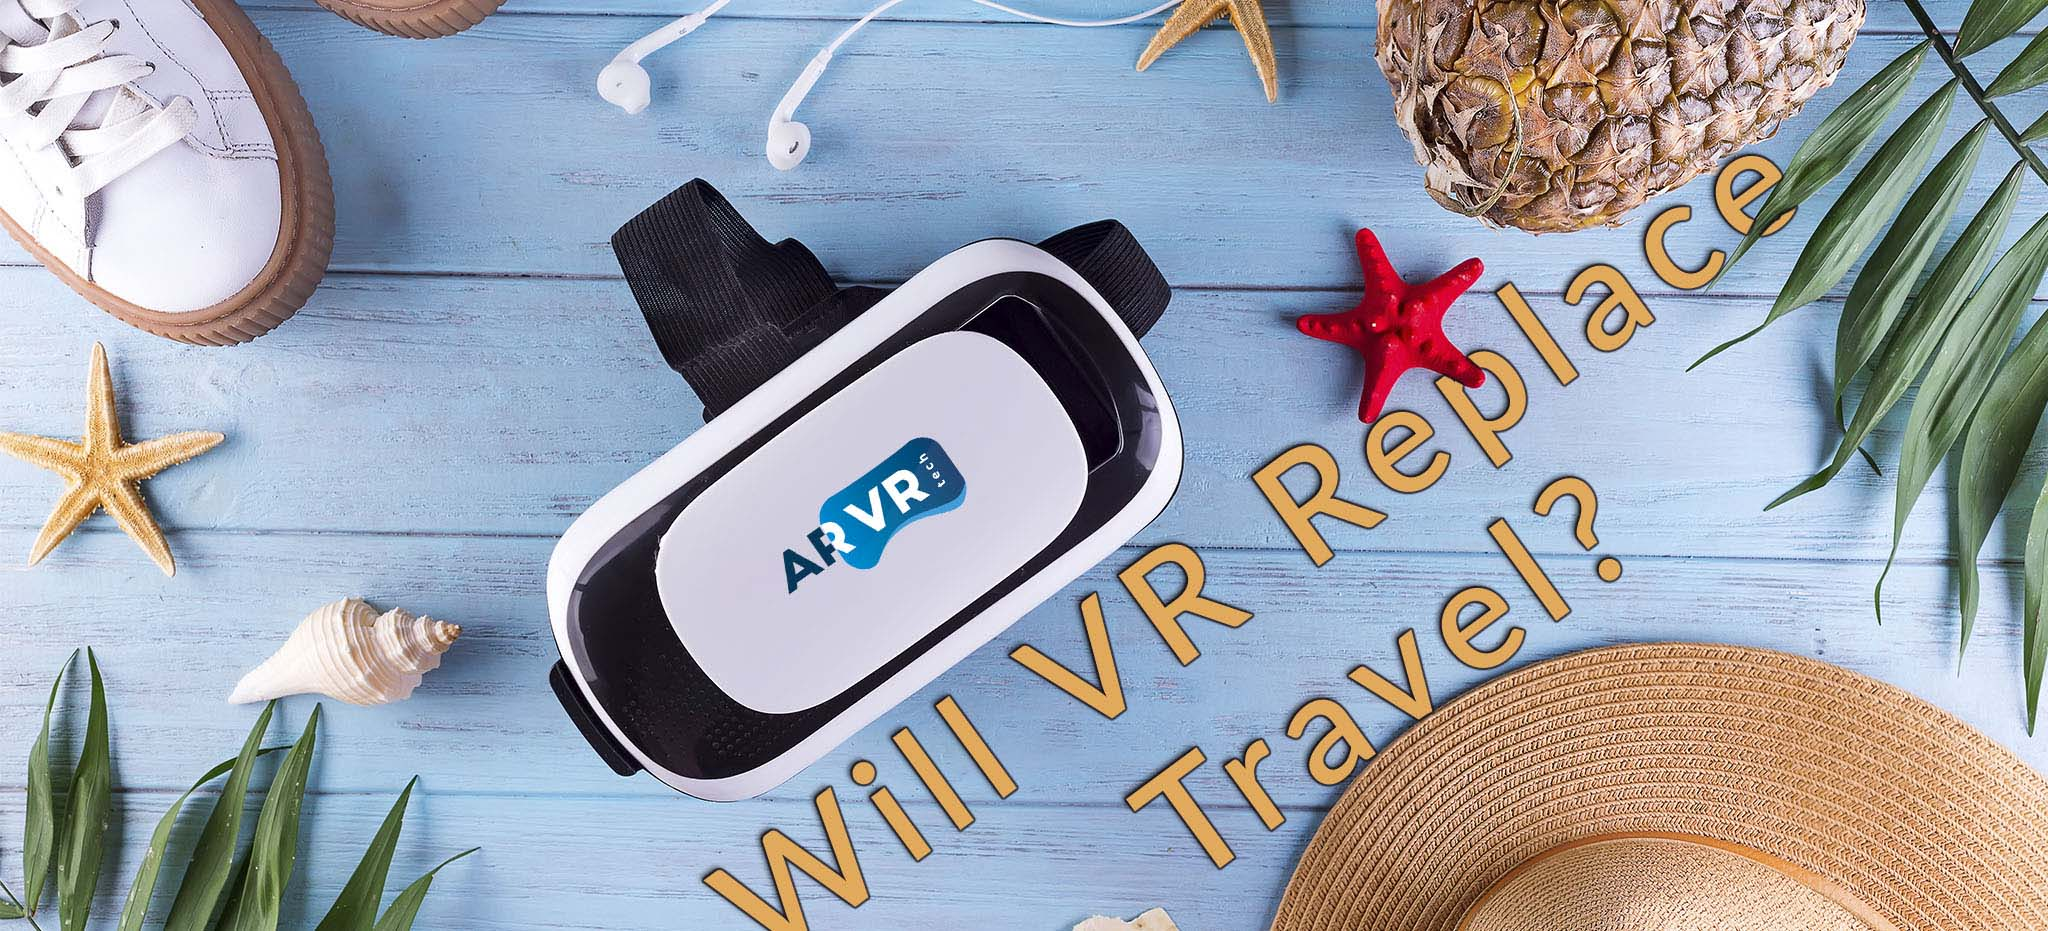 Will VR Replace Travel?